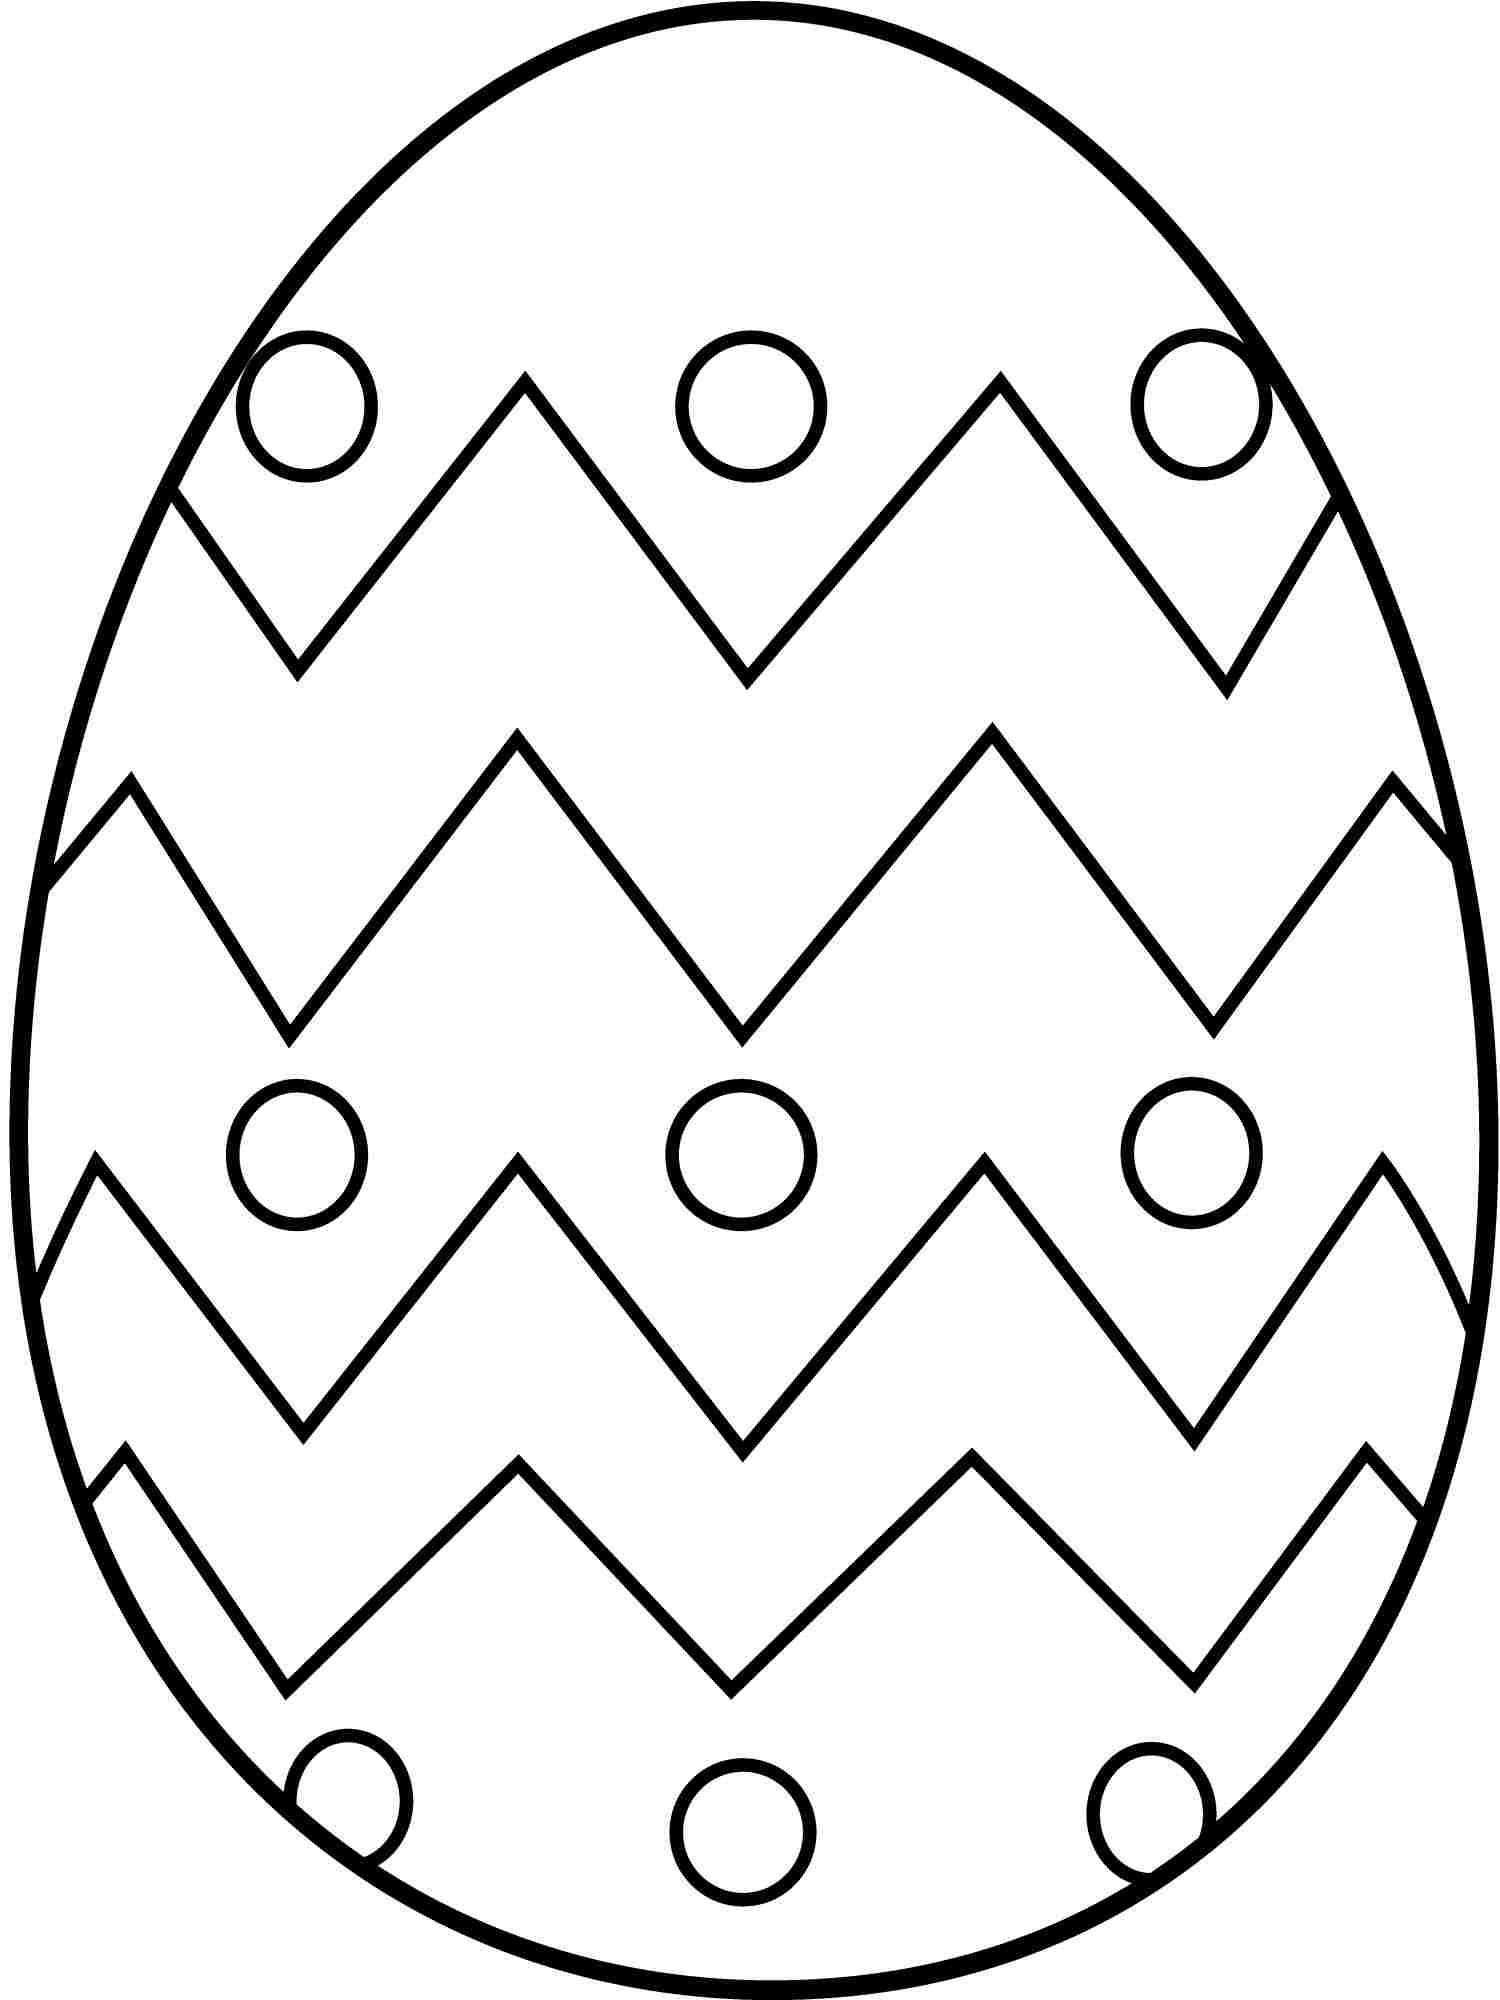 Printable Free Easter Coloring Pages For Kids